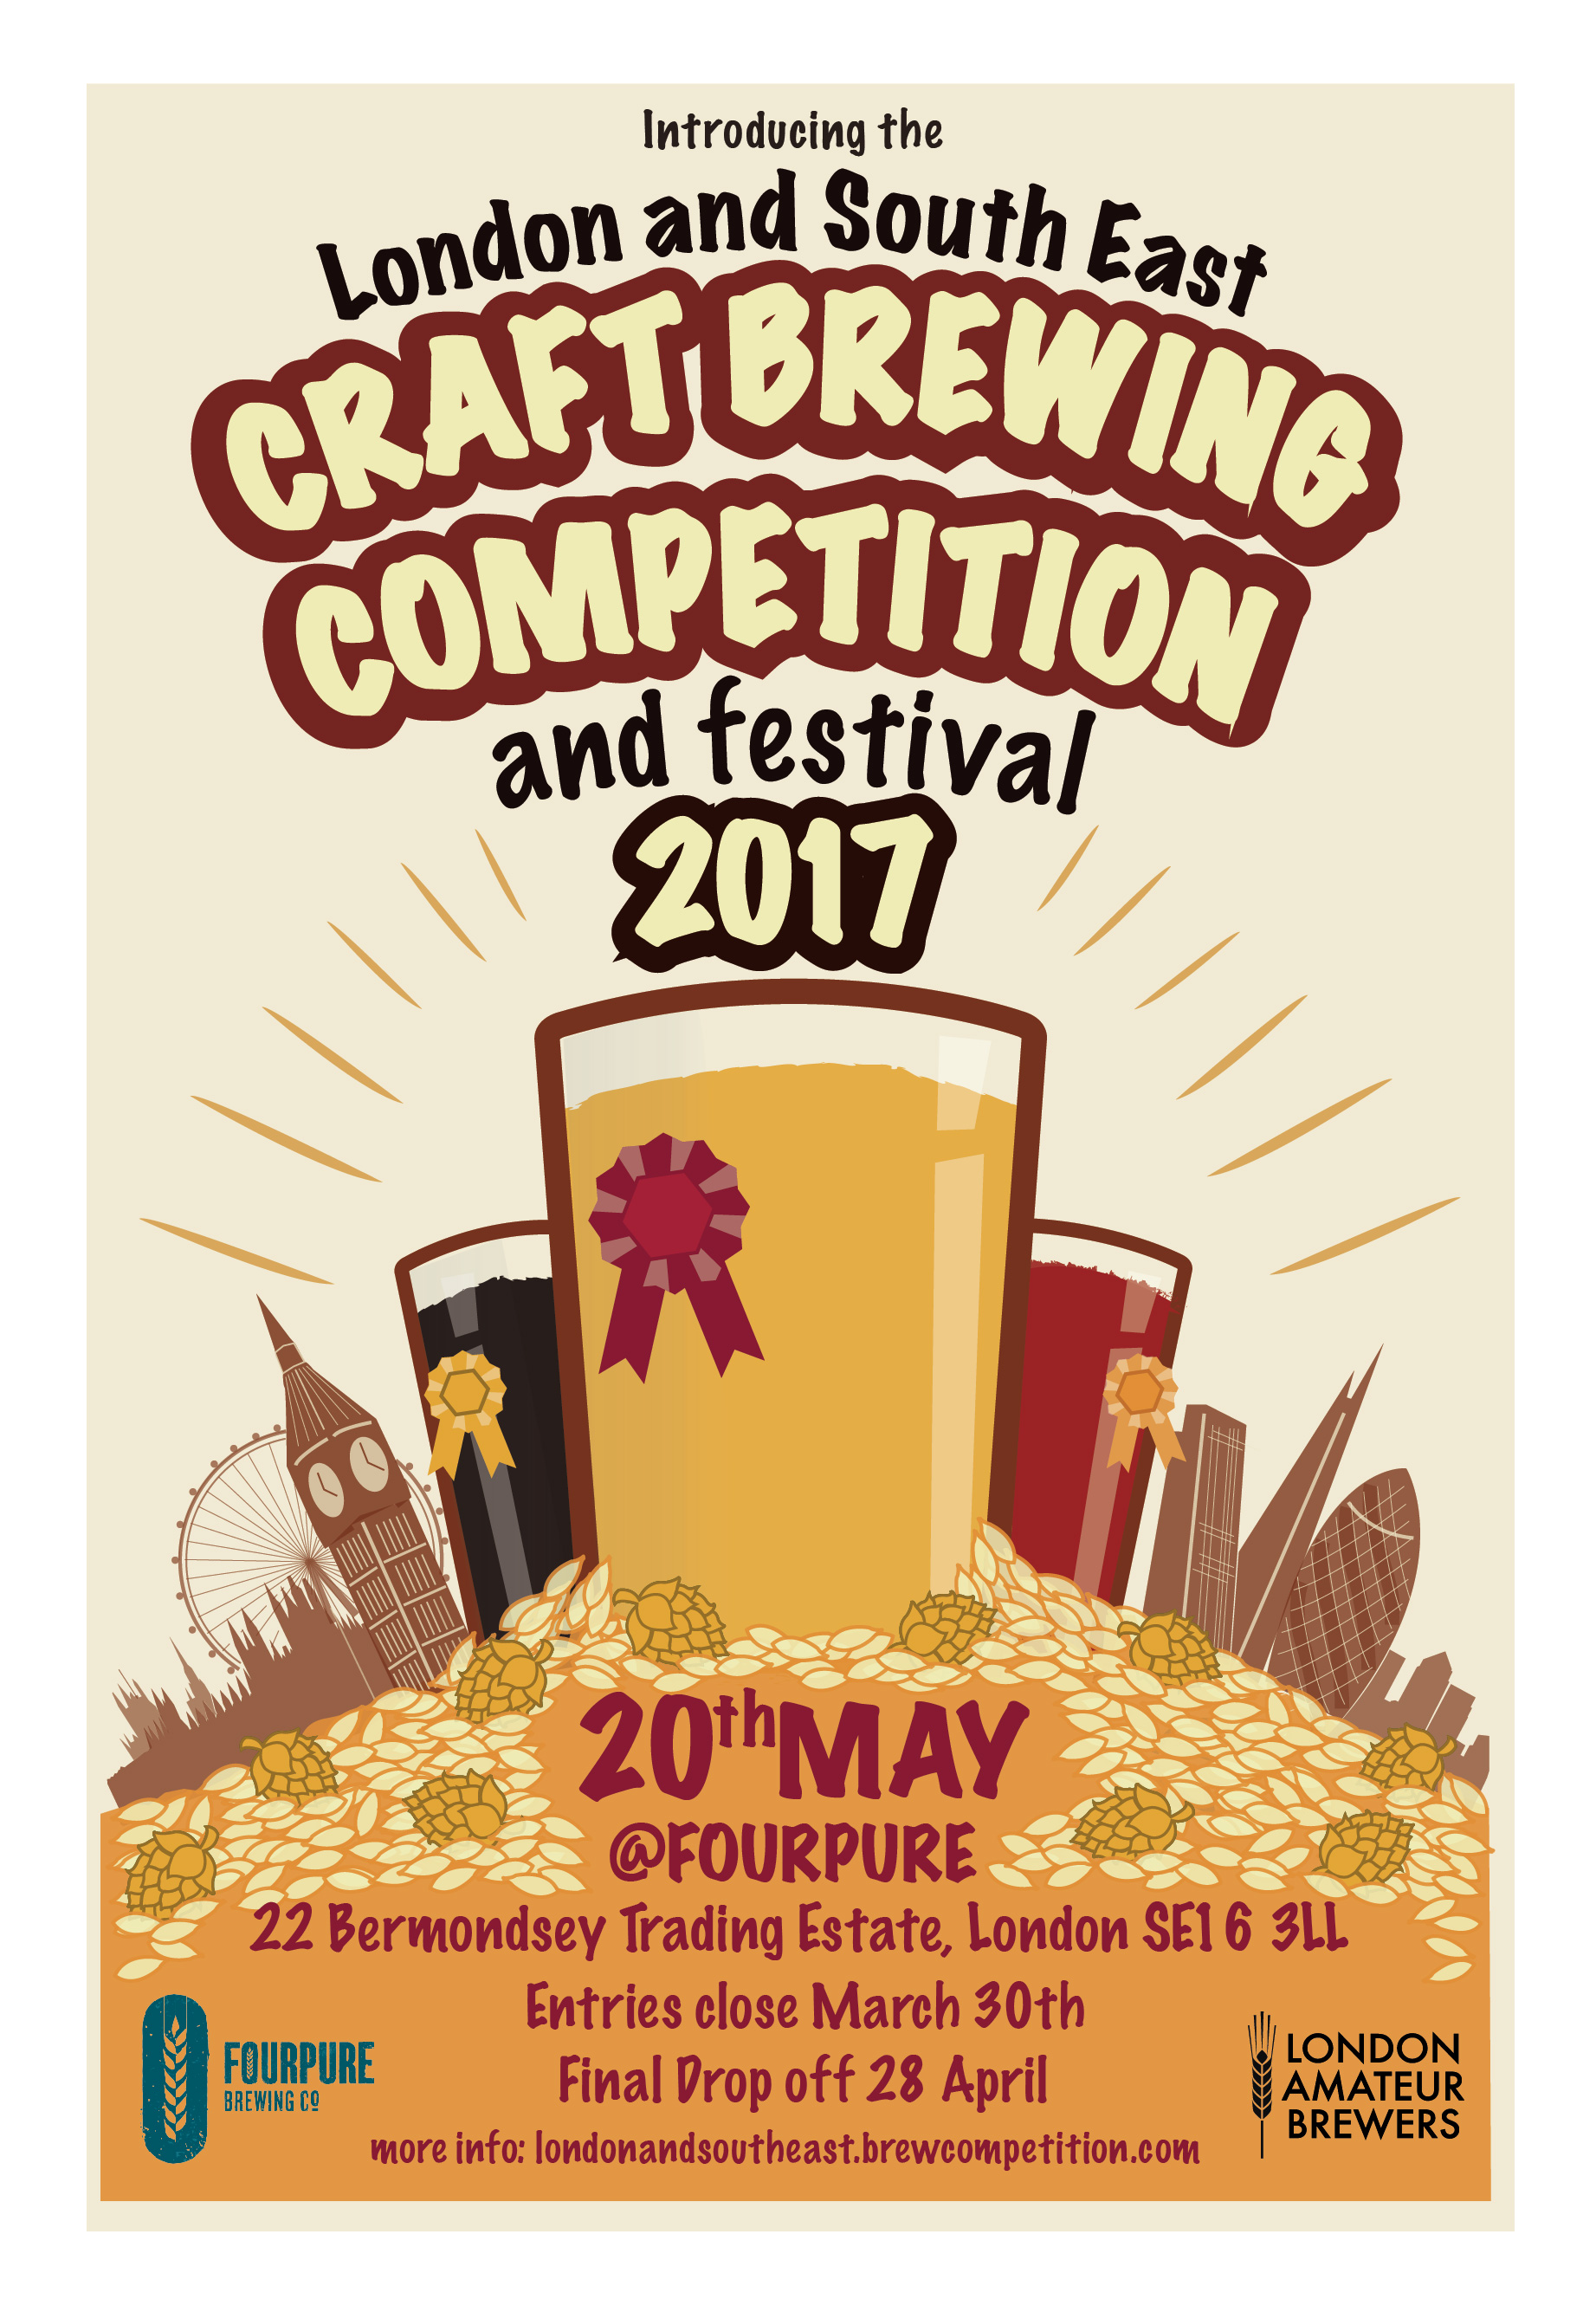 London and South East Craft Brewing Competition